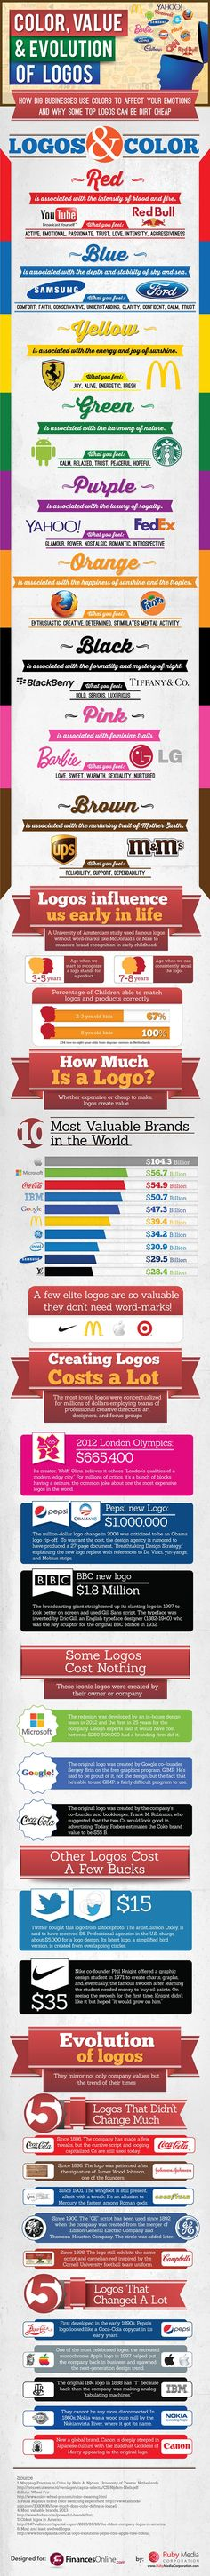 What the Color of Your Logo Says About Your Brand